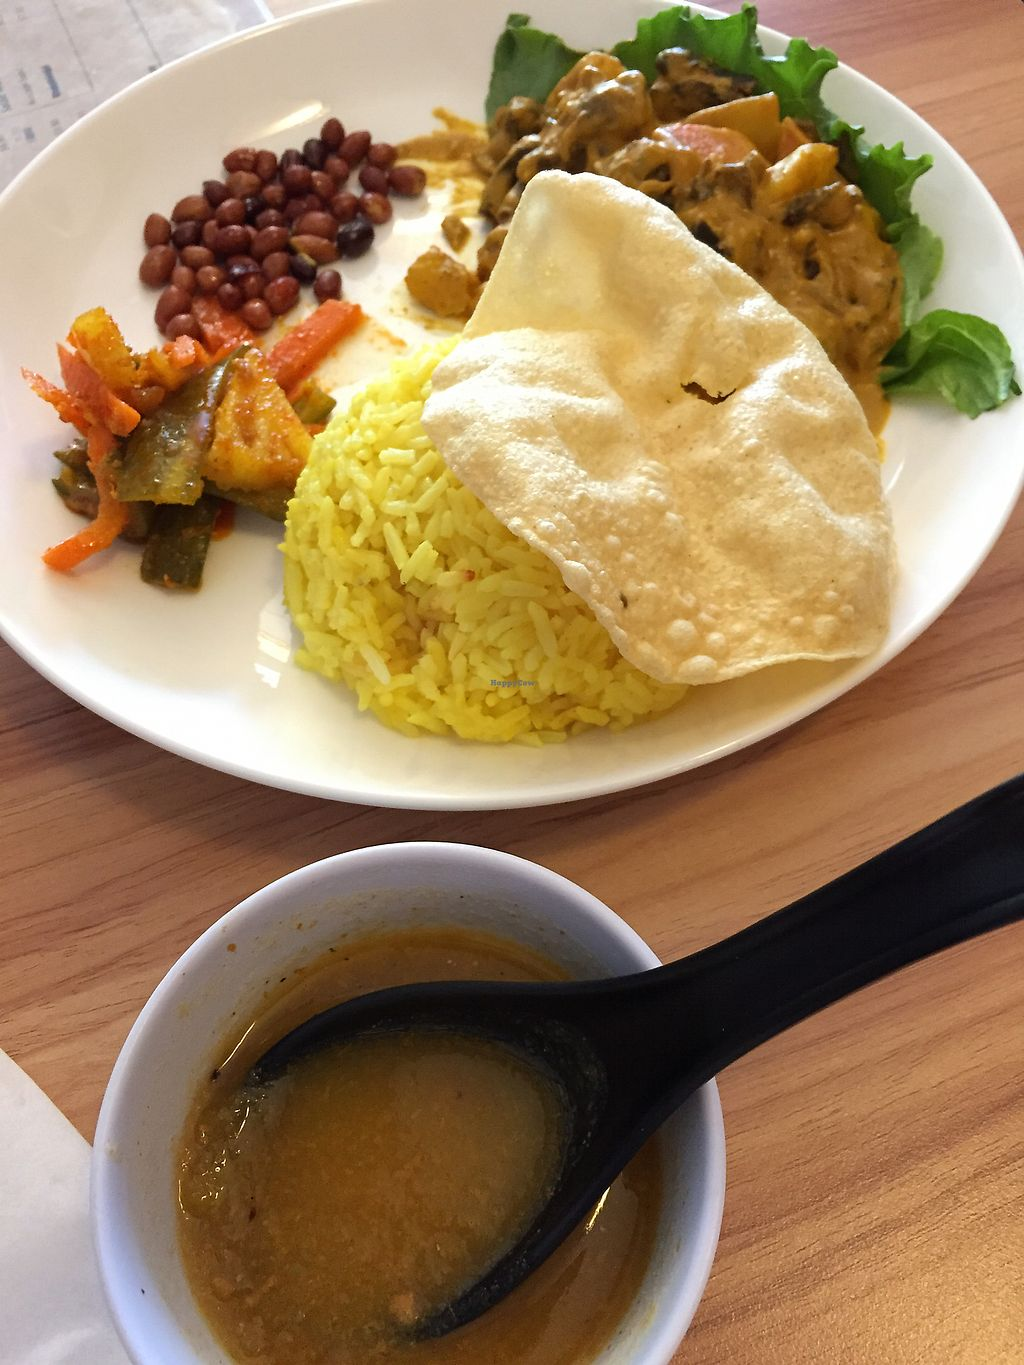 """Photo of VegCafe  by <a href=""""/members/profile/Someoneoutthere"""">Someoneoutthere</a> <br/>Curry comes with a soup.  <br/> October 6, 2017  - <a href='/contact/abuse/image/72534/312248'>Report</a>"""